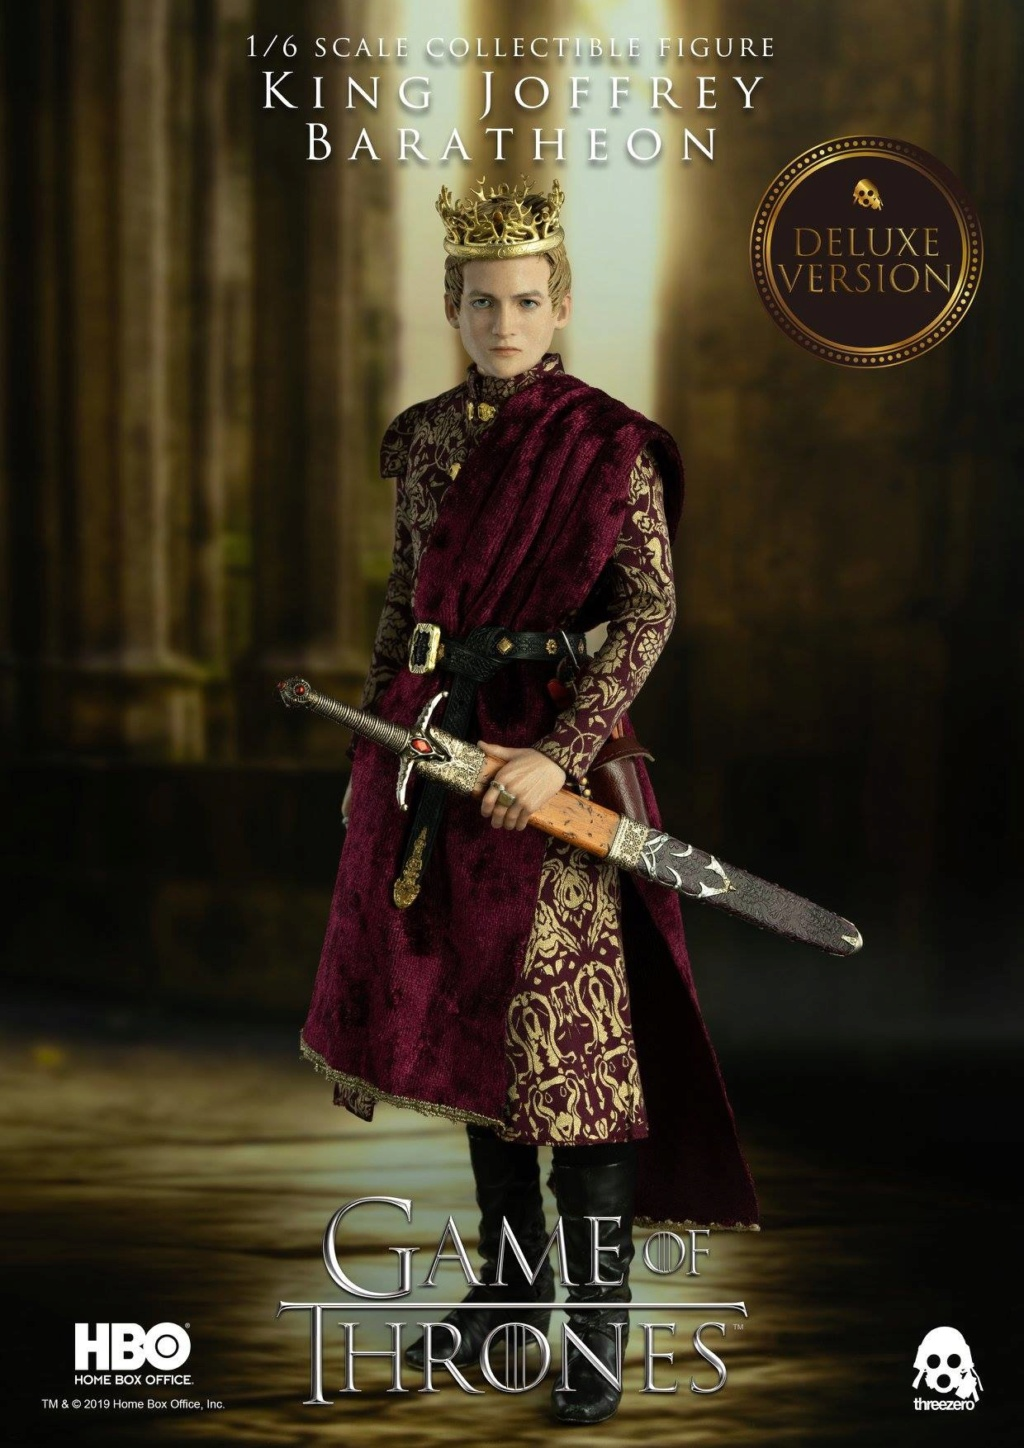 TVShow - NEW PRODUCT: ThreeZero: 1/6 scale Game of Thrones – King Joffrey Baratheon (Standard edition) & (Deluxe Edition) (UPDATED) 18483510